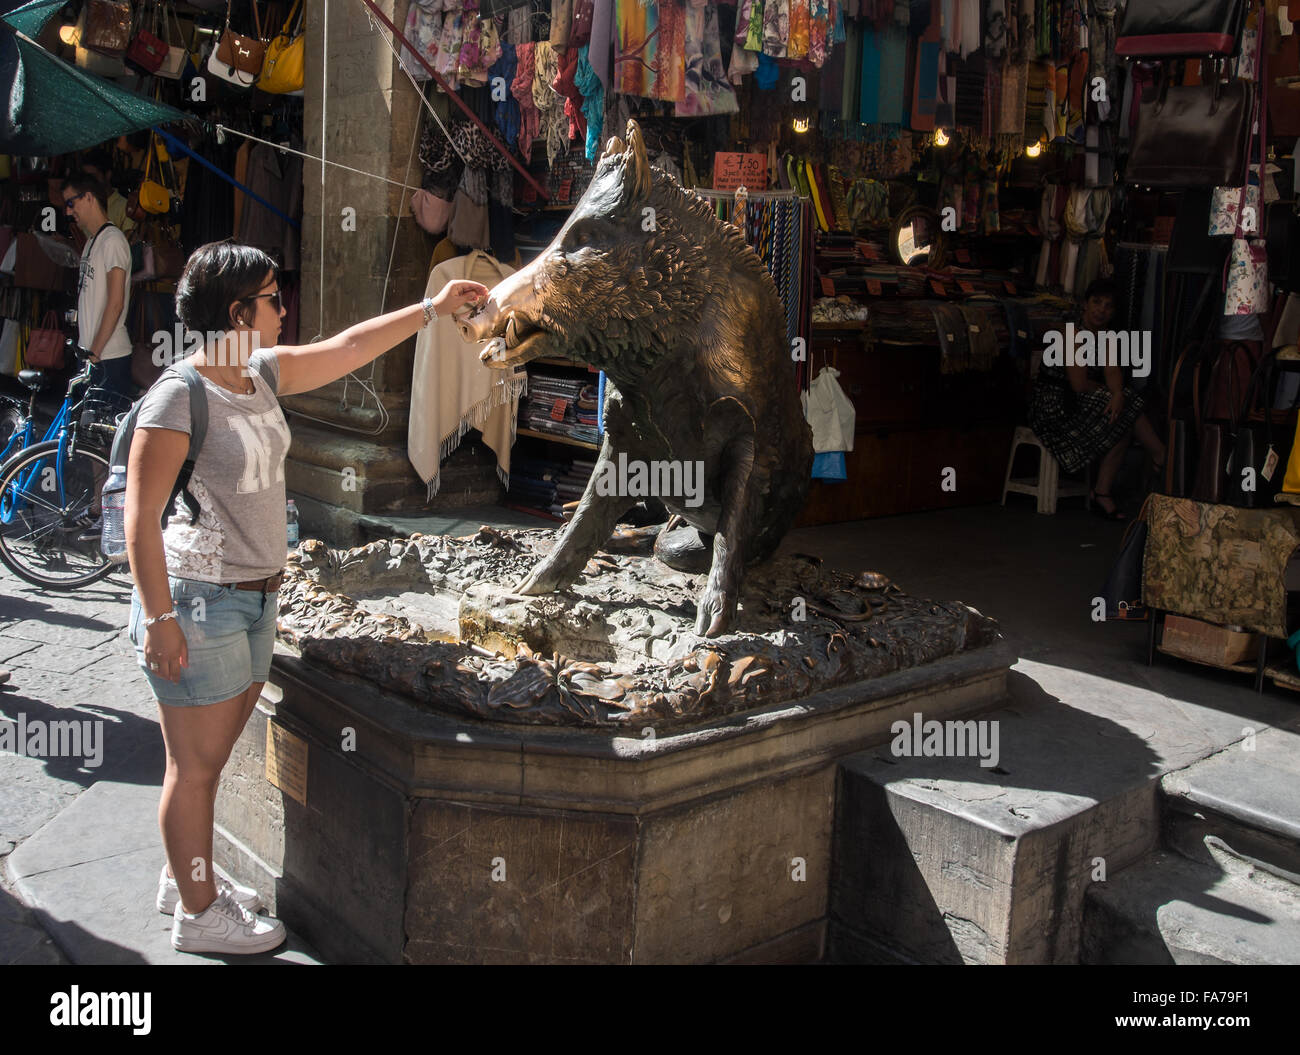 Bronze statue of Boar Pig in Piazza del Mercato Nuovo which bring good luck if touched - Stock Image